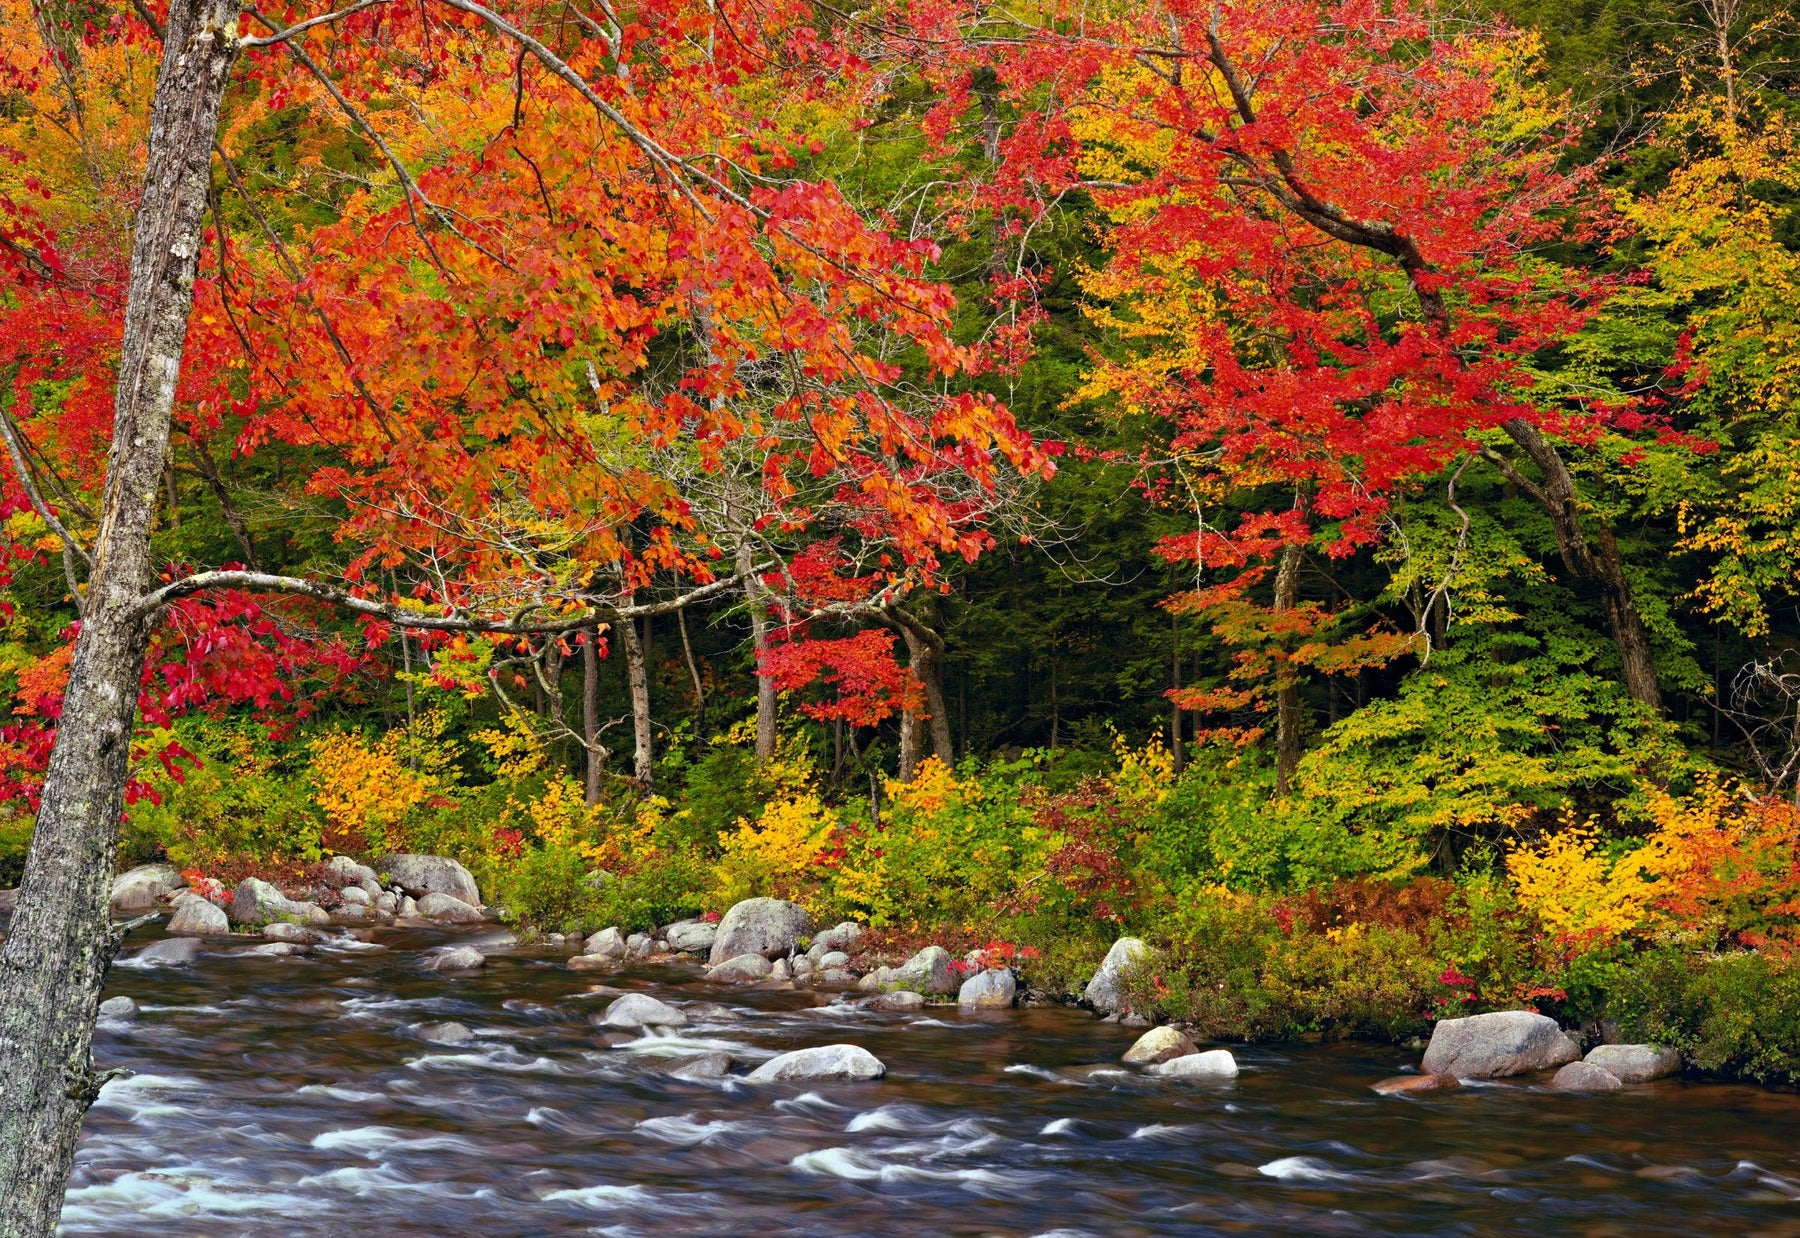 River running over rocks in the middle of an Autumn colored forest in White Mountain National Forest New Hampshire